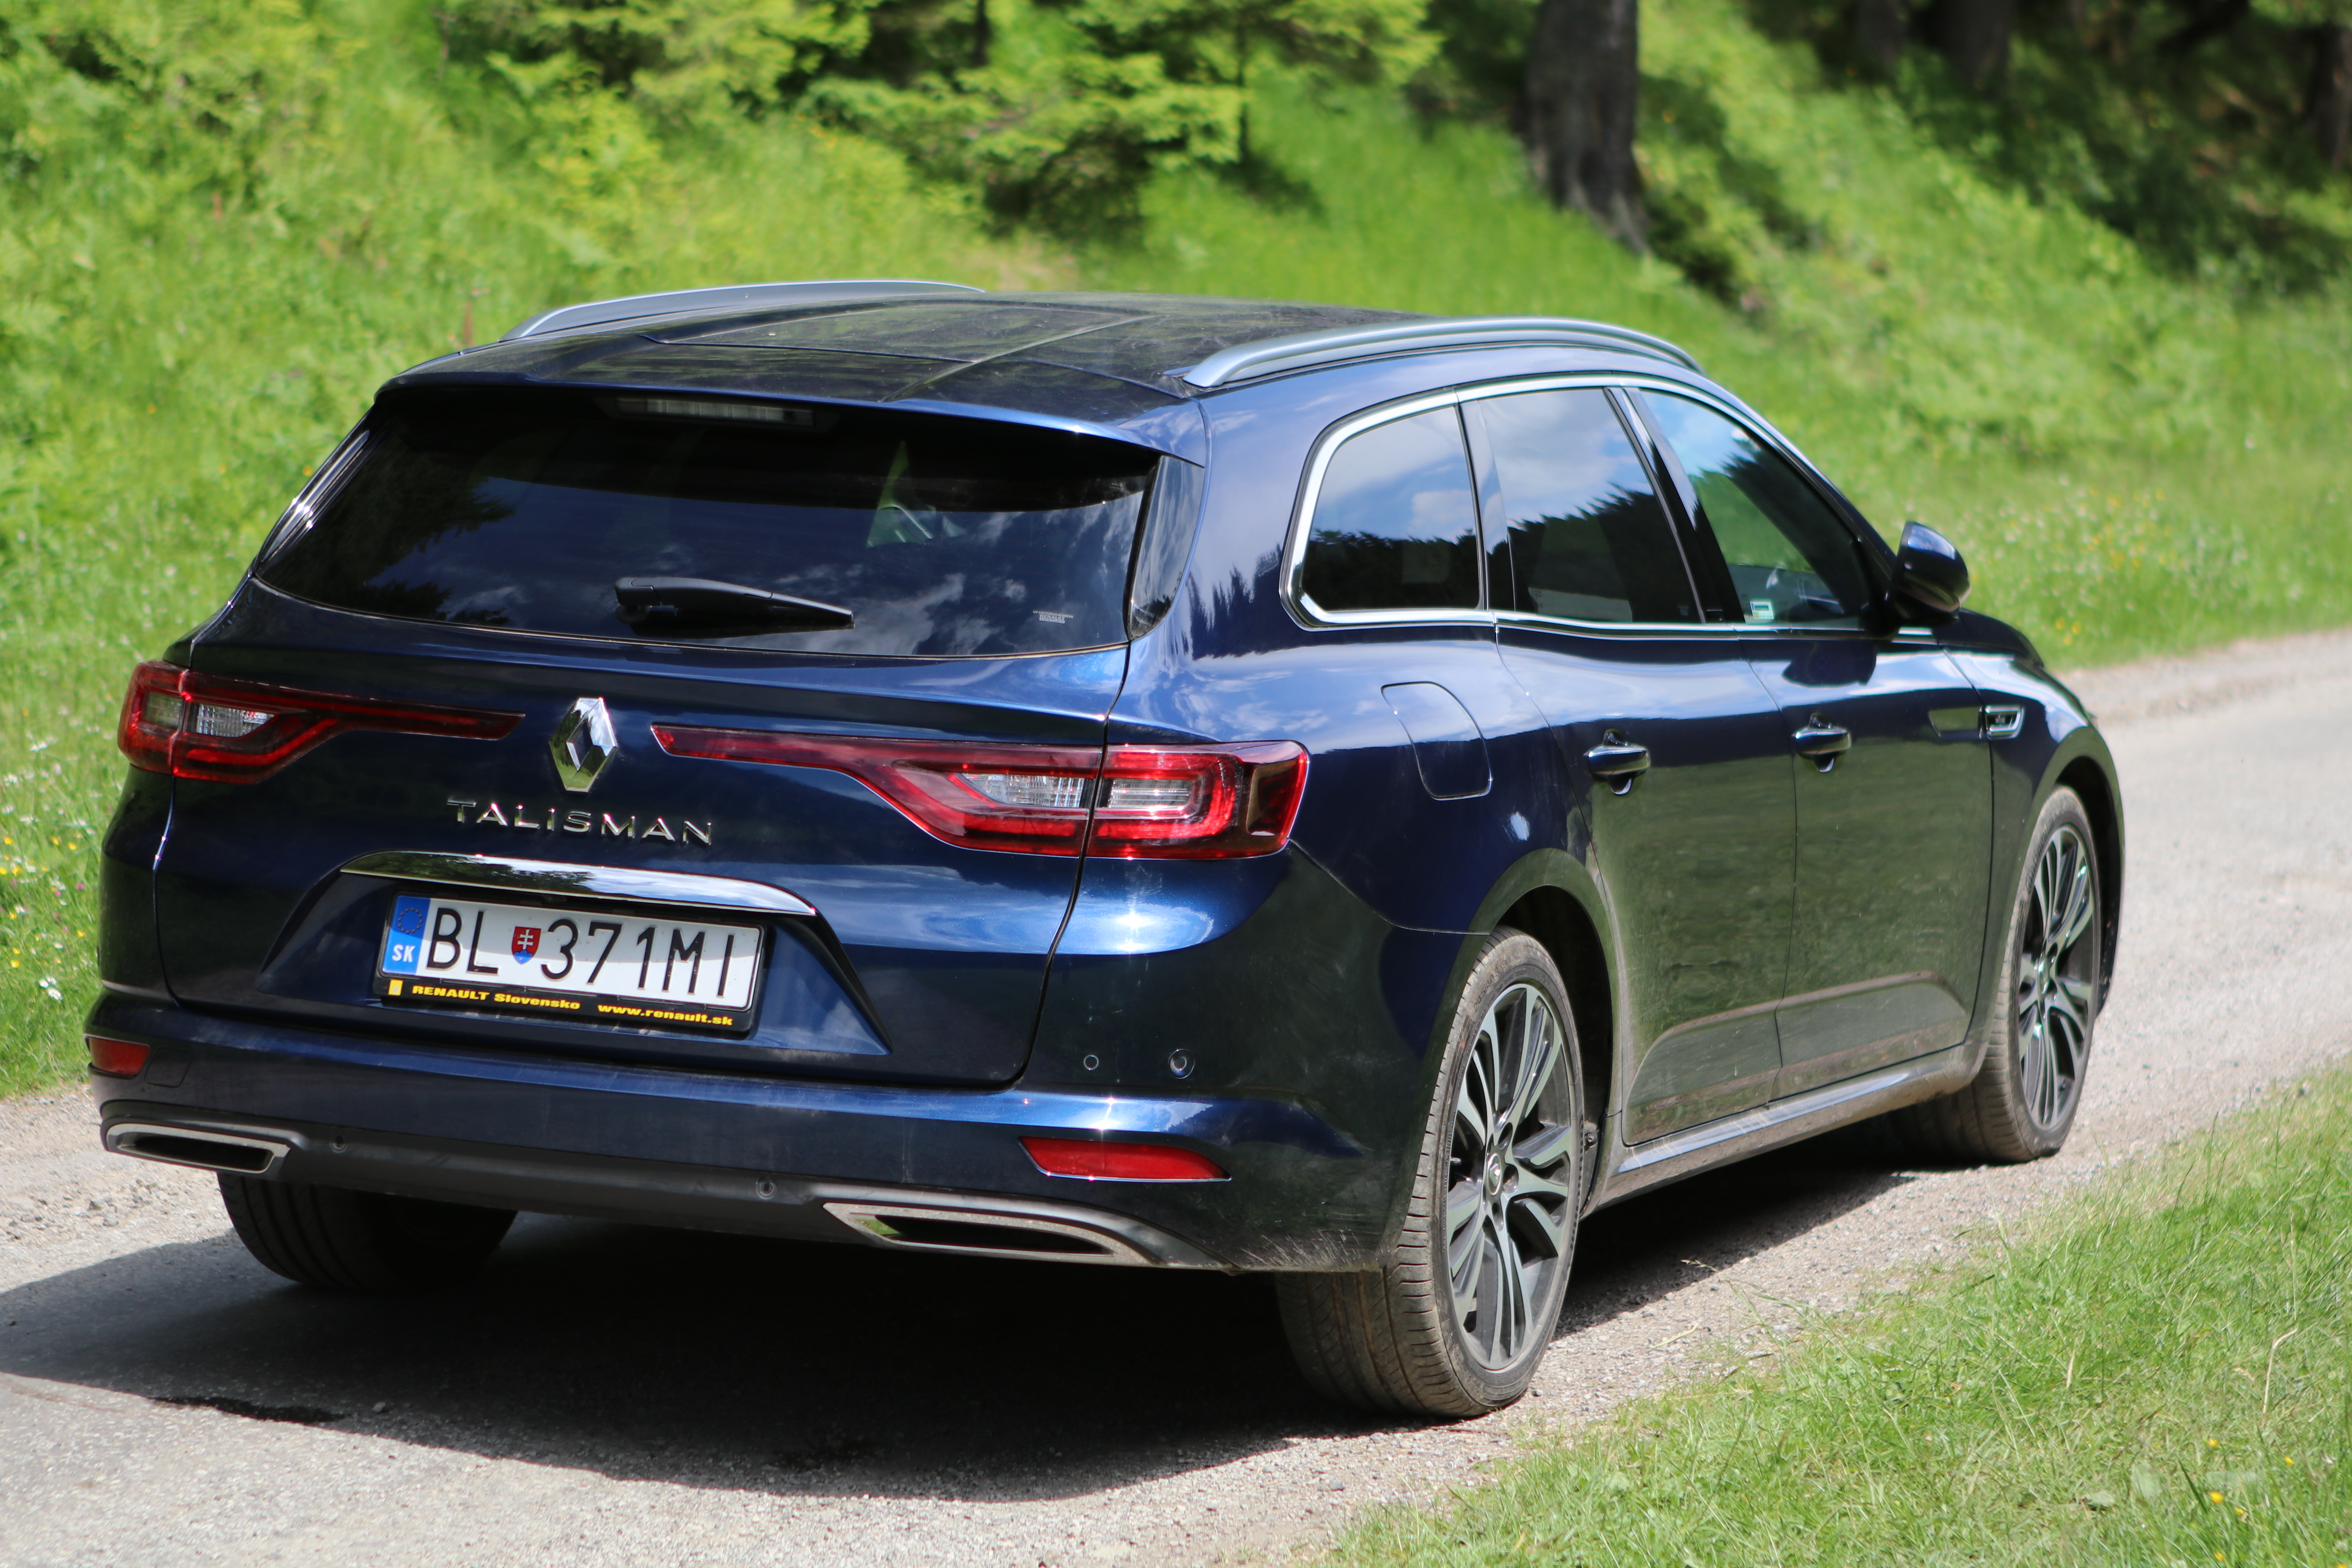 Photo Test: Renault Talisman